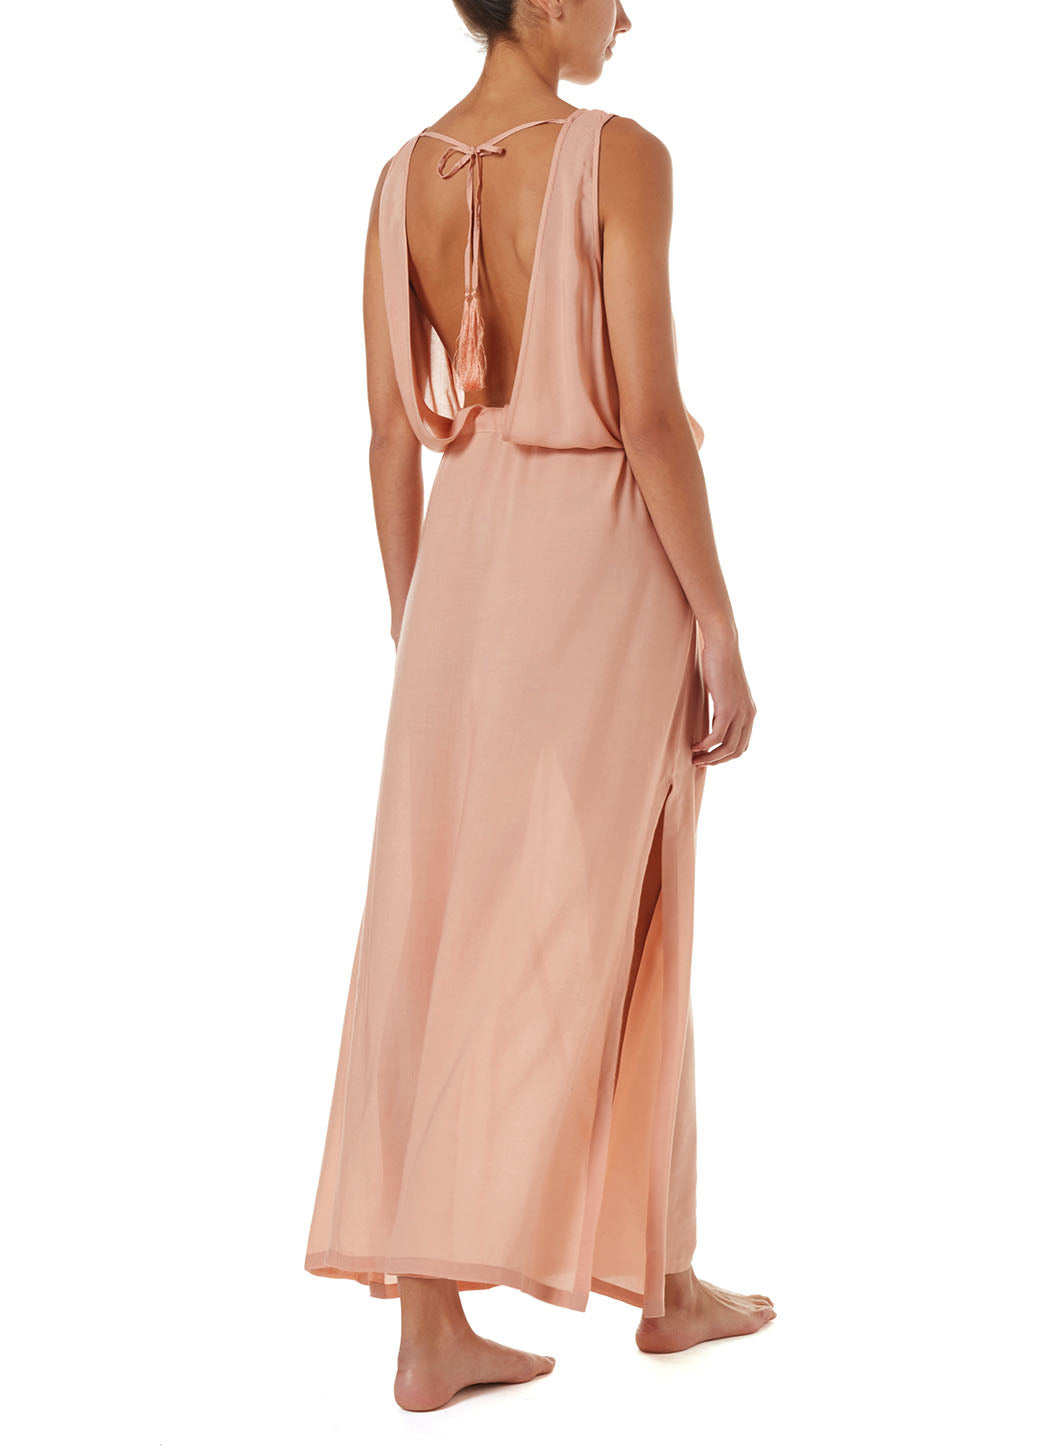 Jacquie Tan Lace-Up Belted Maxi Dress